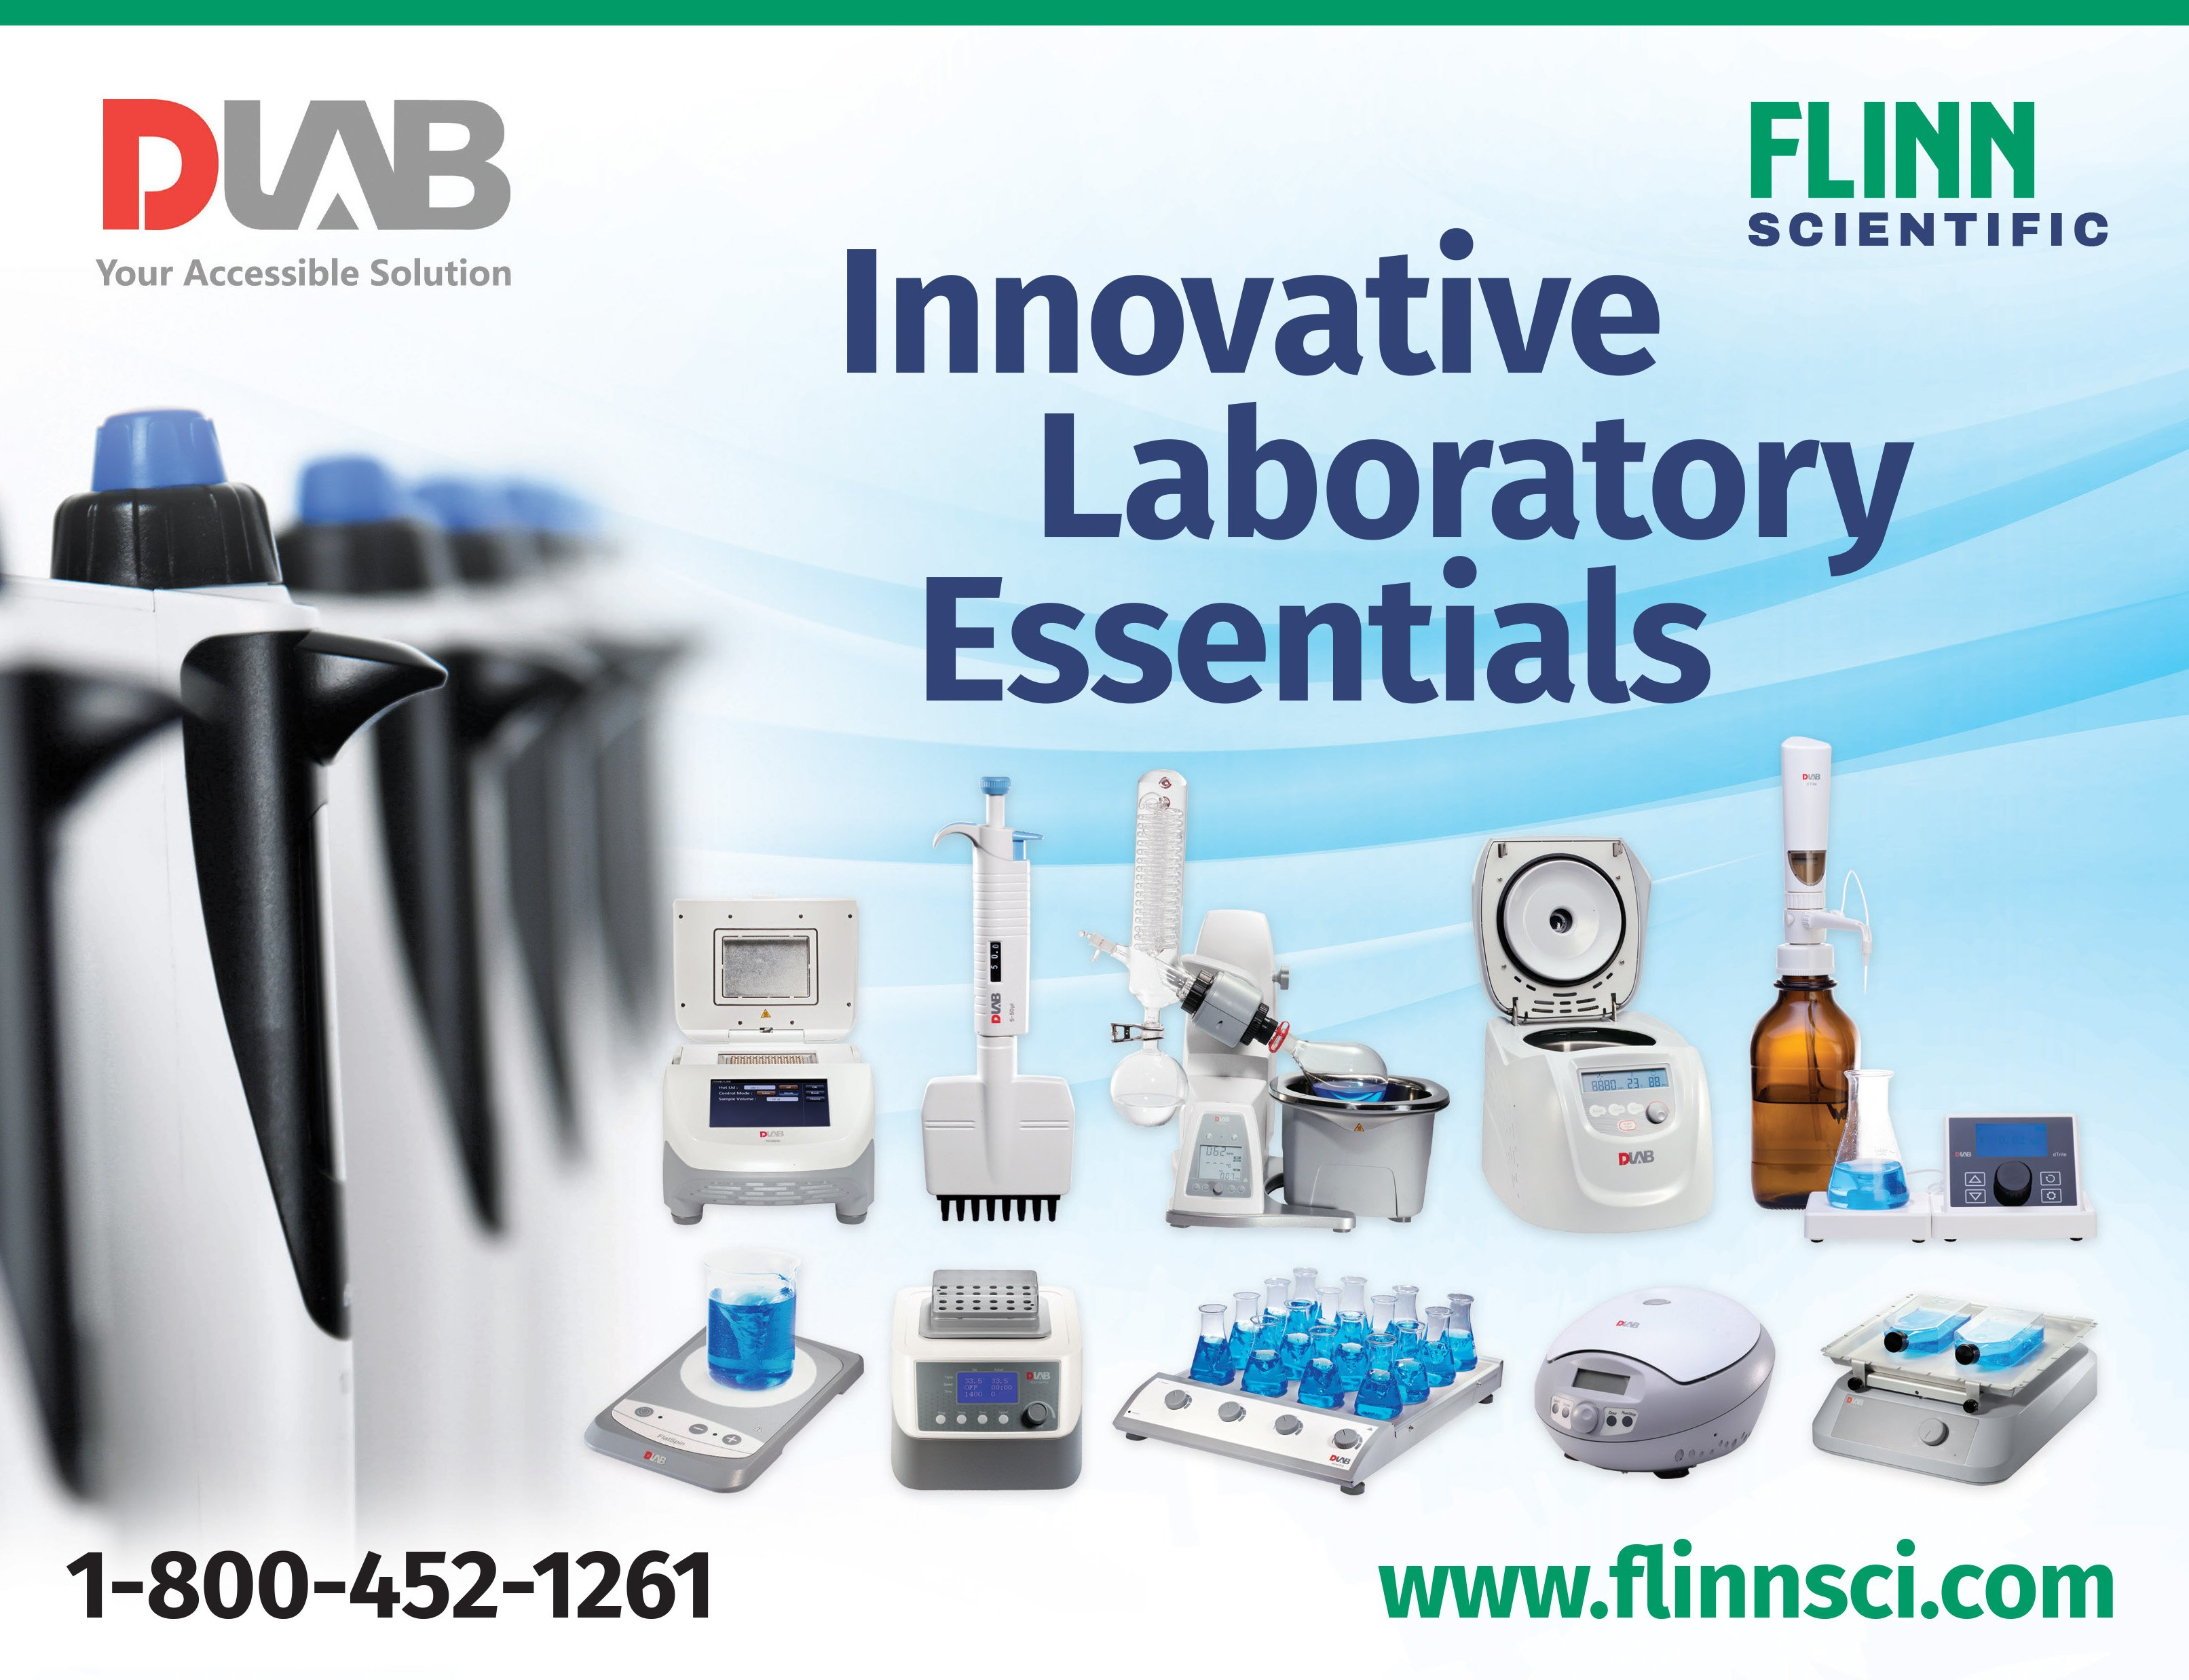 DLAB Innovative Laboratory Essentials